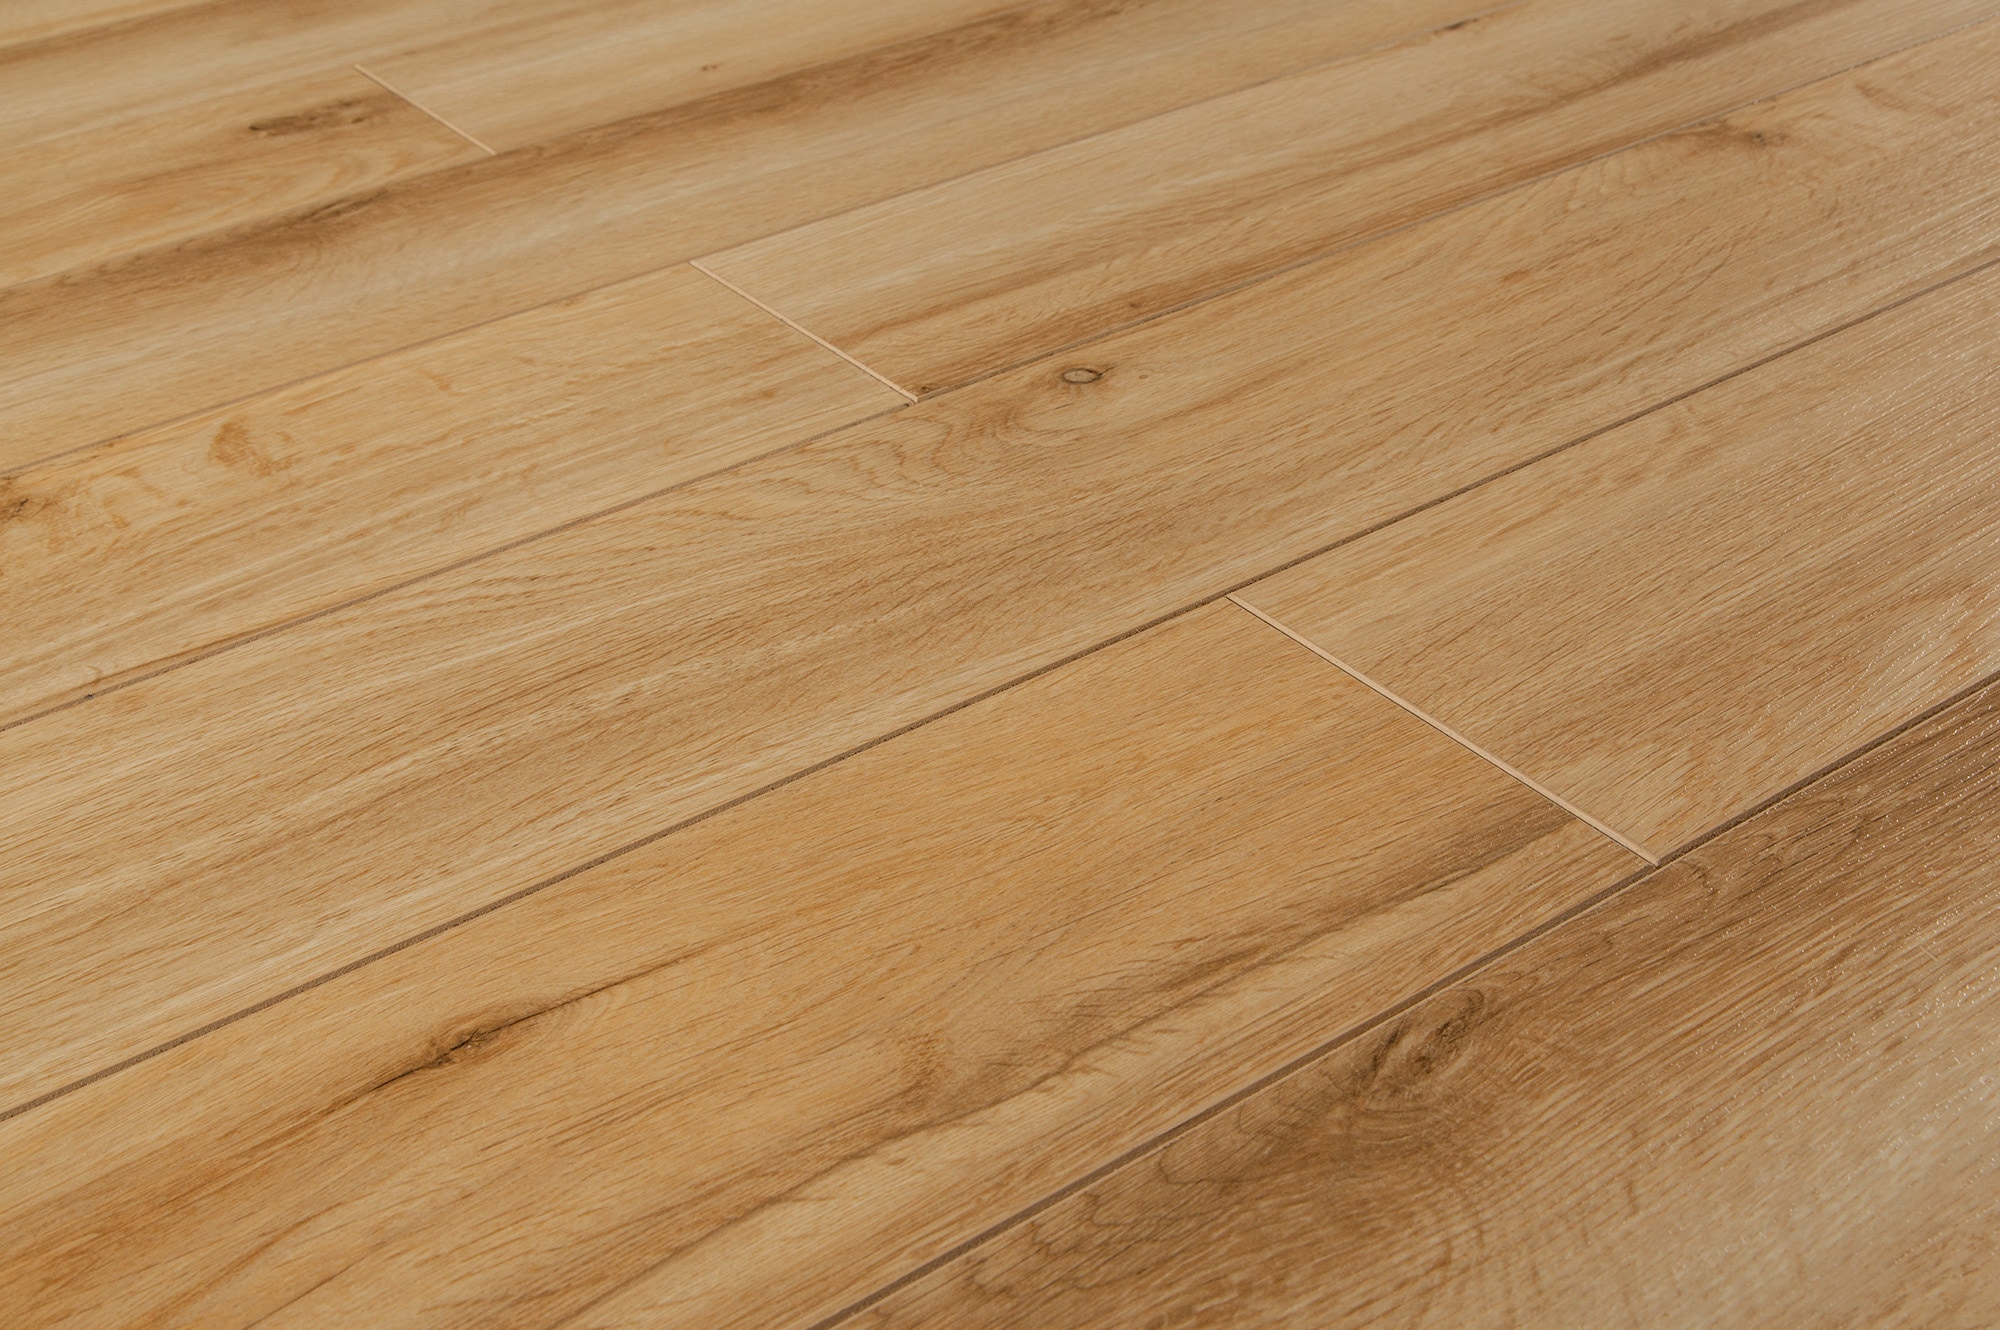 Toklo laminate 12mm ancient spice collection sea salt for Toklo laminate flooring reviews